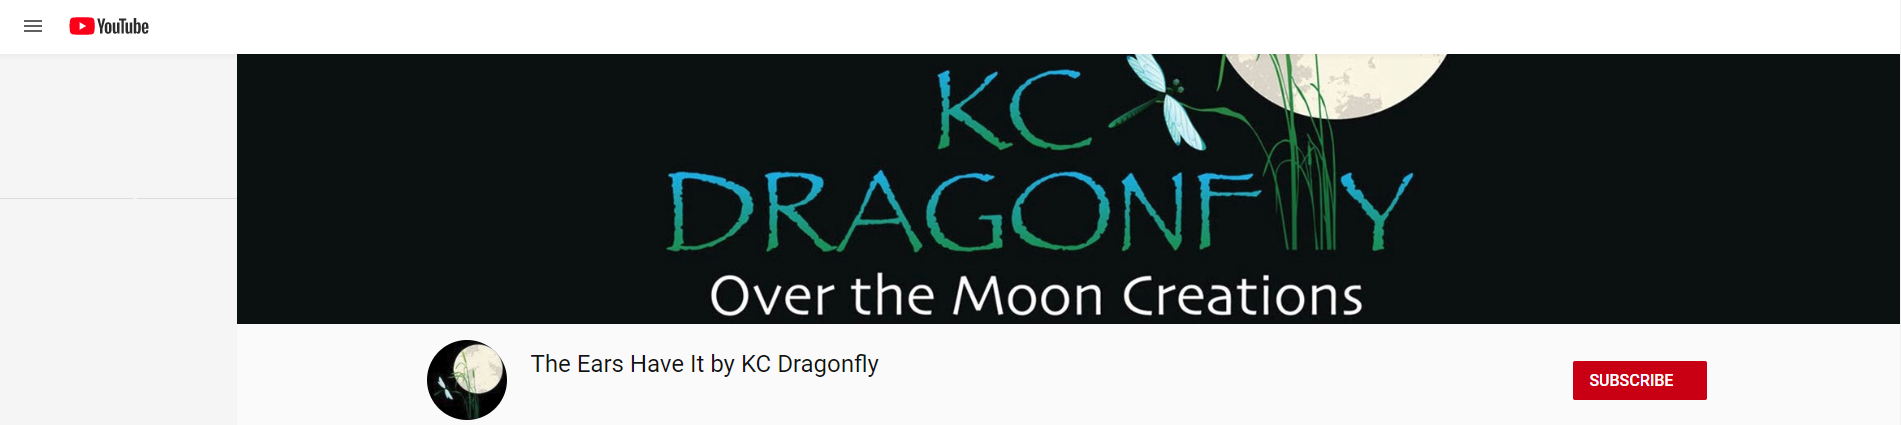 kc dragonfly youtube channel logo